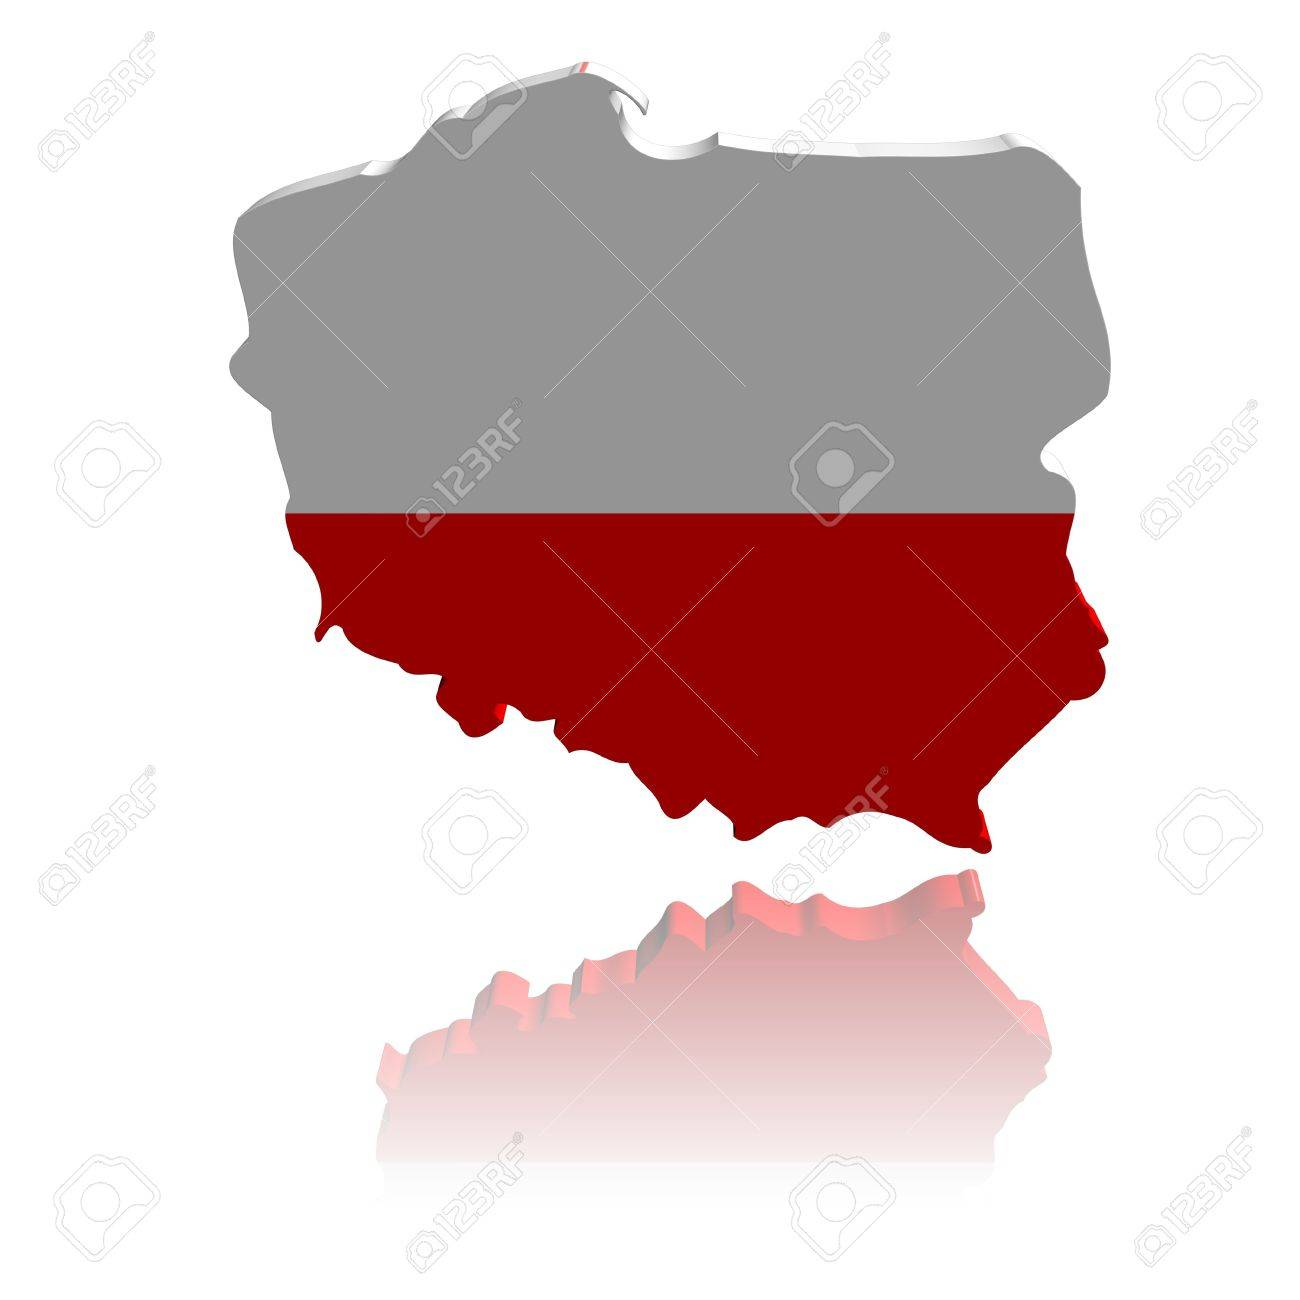 Poland Map Flag 3d Render With Reflection Illustration Stock Photo ...